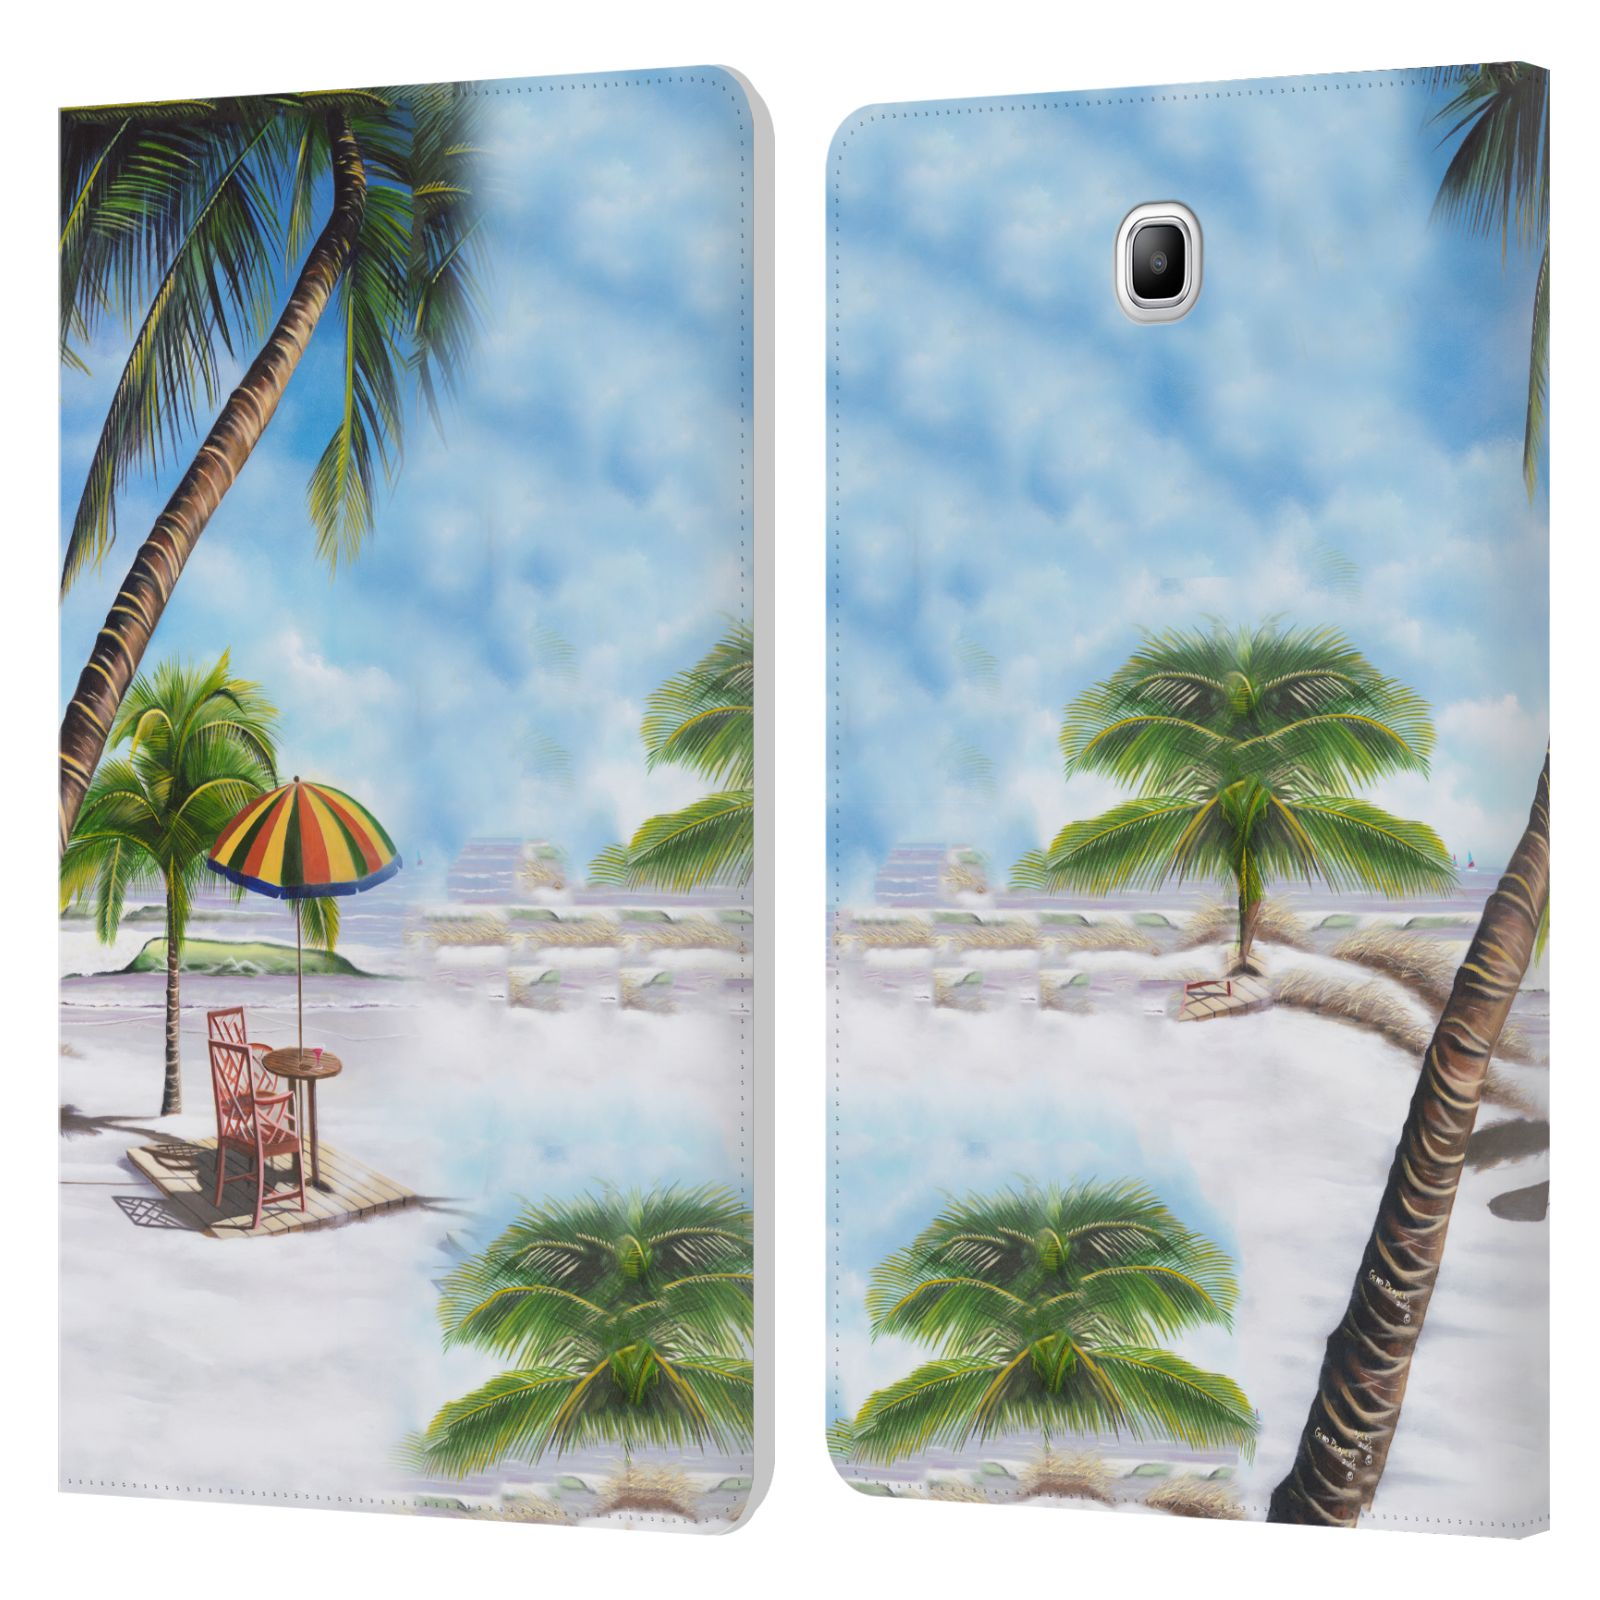 OFFICIAL-GENO-PEOPLES-ART-HOLIDAY-LEATHER-BOOK-CASE-FOR-SAMSUNG-GALAXY-TABLETS